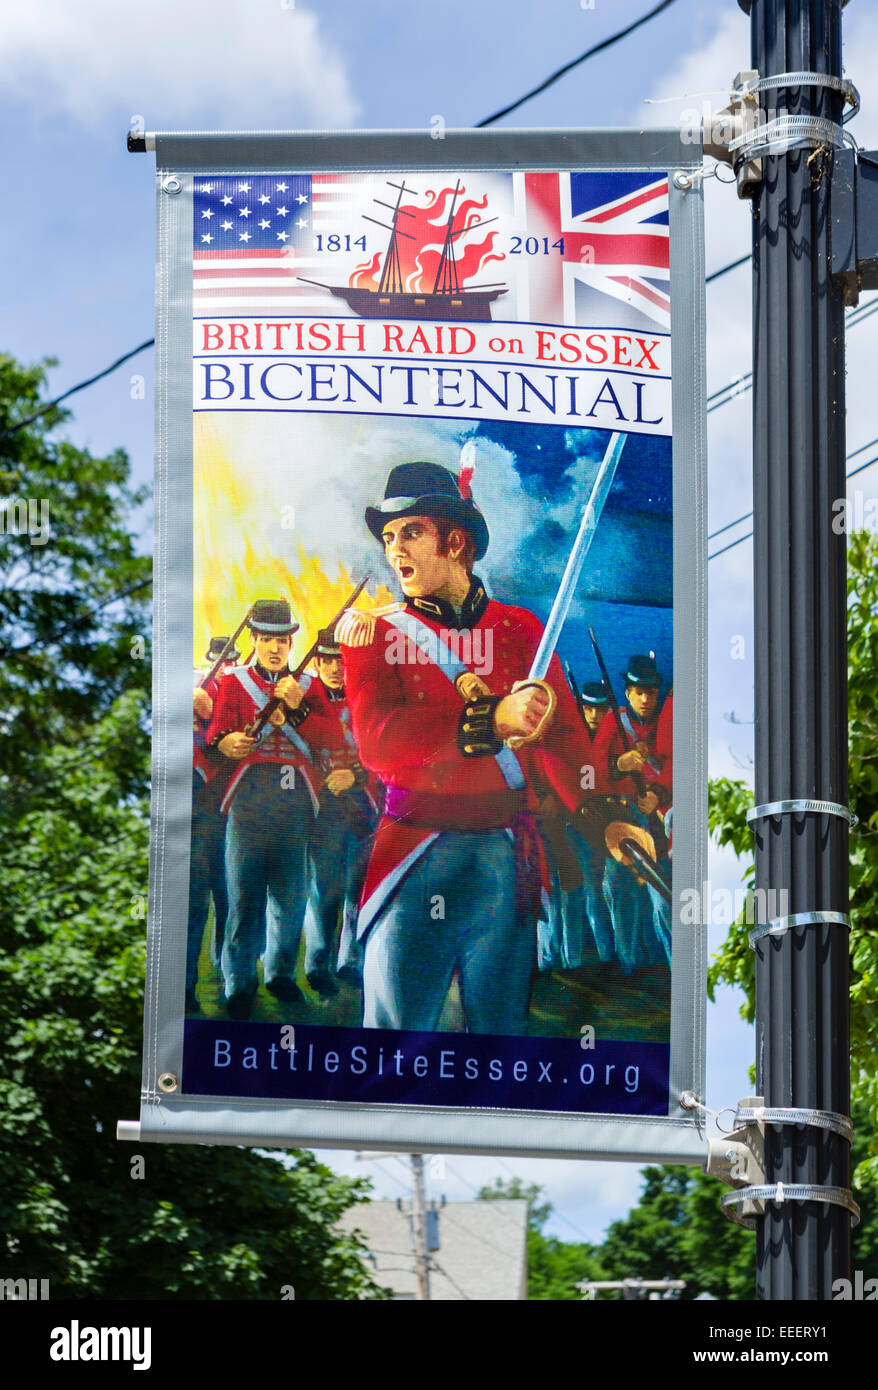 Banner commemorating the bicentennial of the British raid  on the town in 1814, Essex, Connecticut, USA - Stock Image